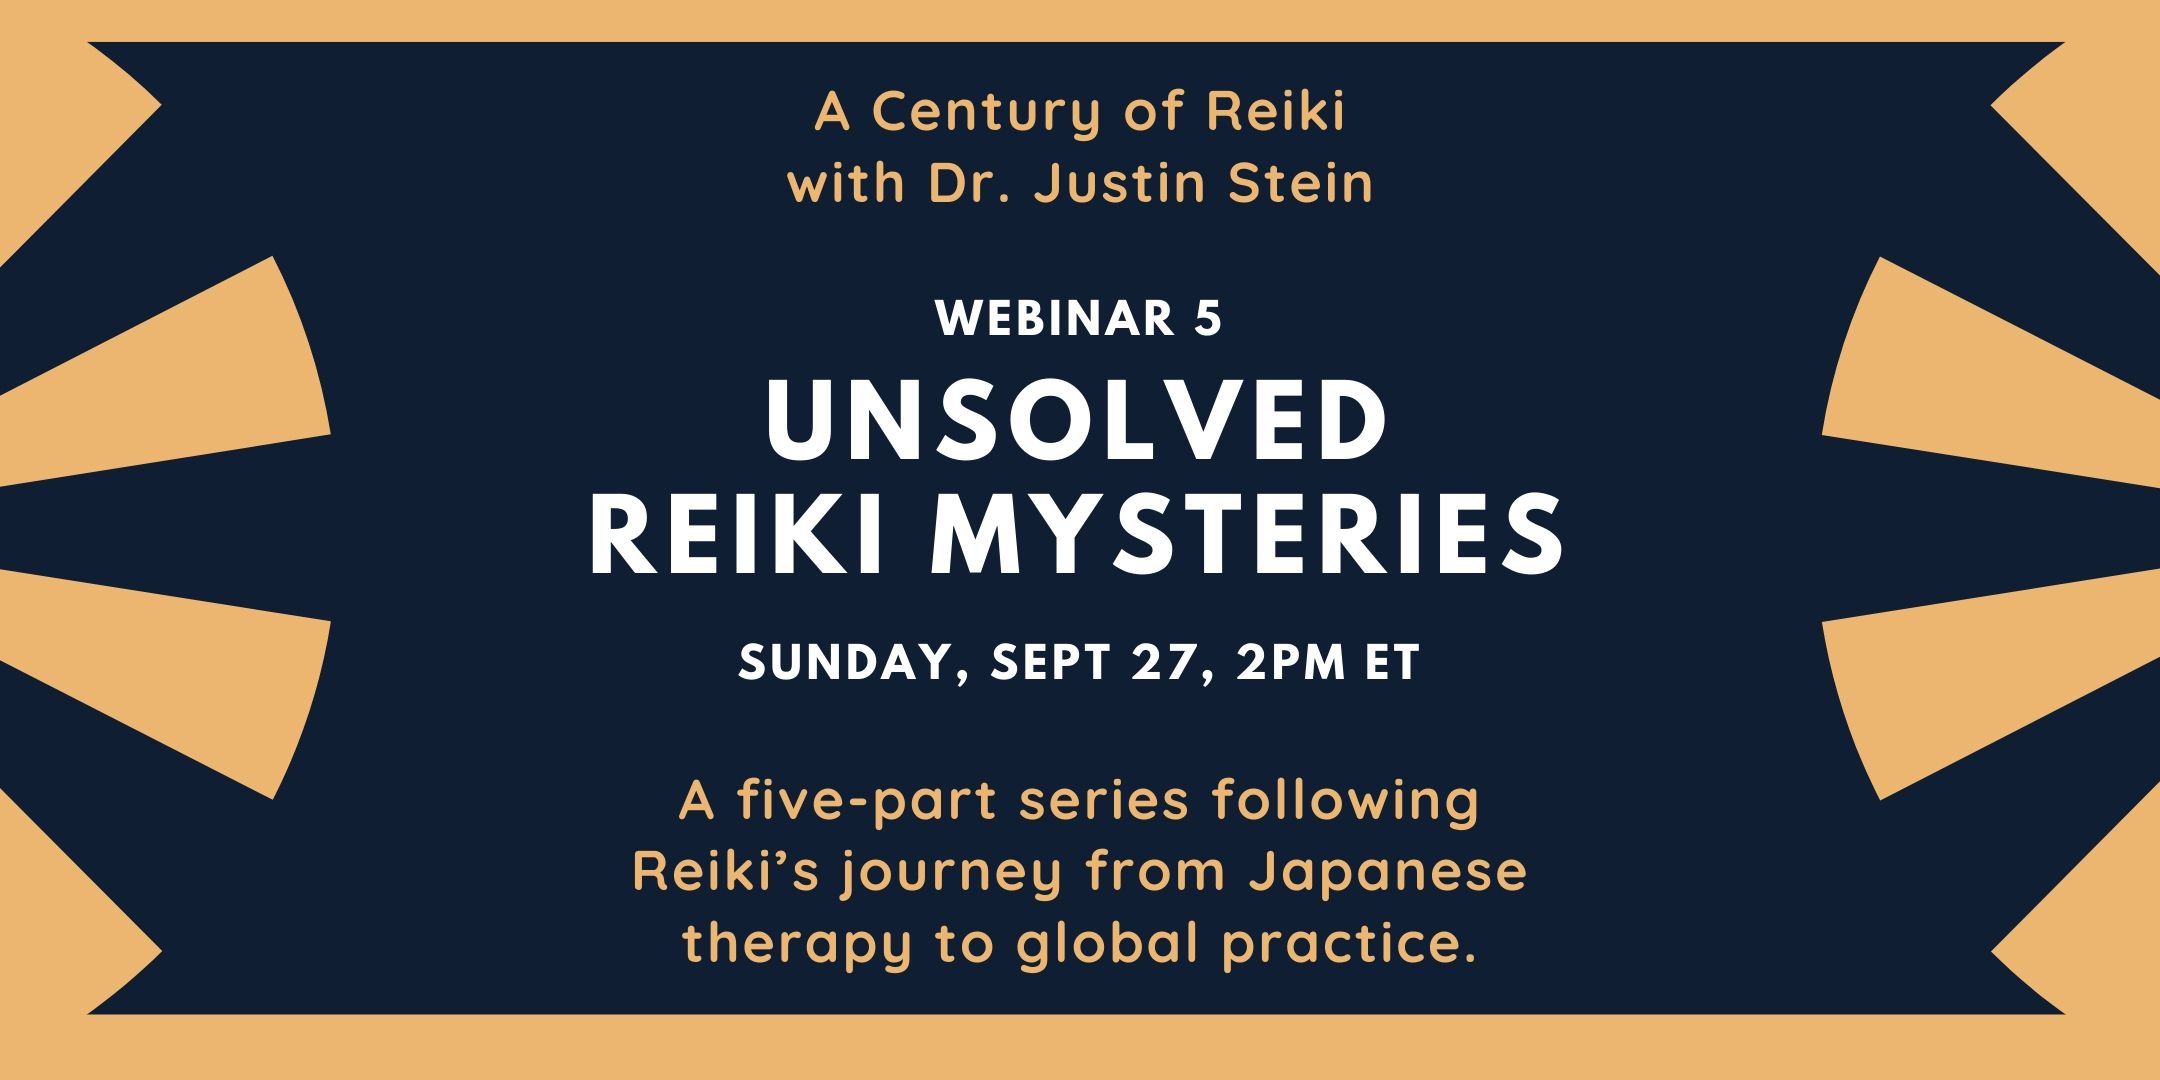 Image for webinar 5 in the series A Century of Reiki with Dr. Justin Stein